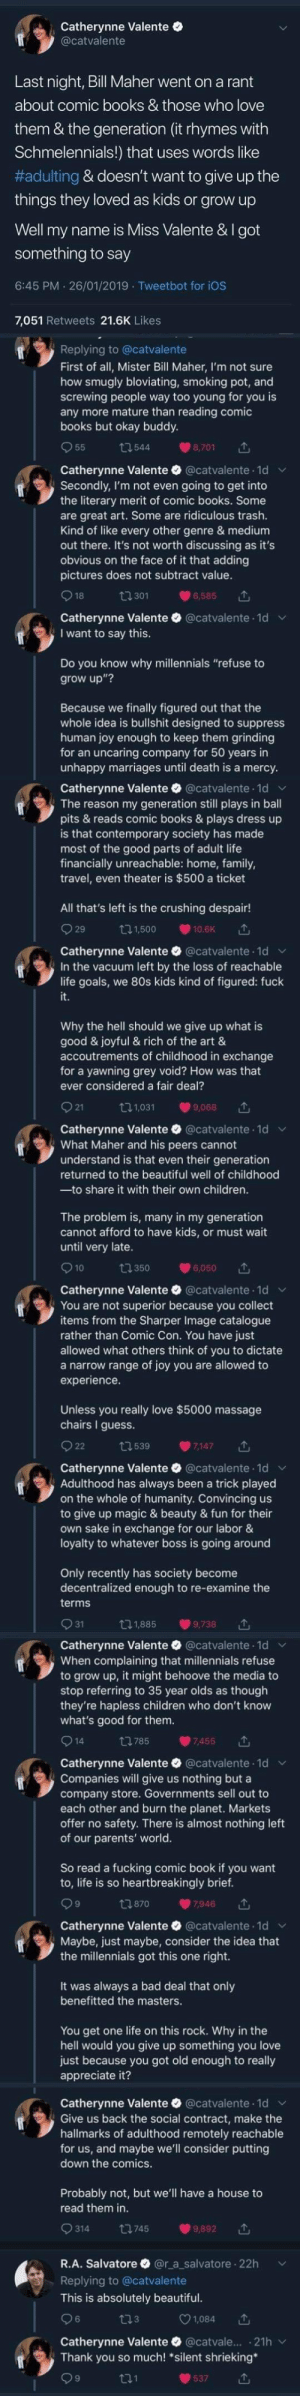 """tl;dr: let Millennials enjoy kid stuff since we live in a joyless hellscape. Thanks, Boomers.: Catherynne Valente O  @catvalente  Last night, Bill Maher went on a rant  about comic books & those who love  them & the generation (it rhymes with  Schmelennials!) that uses words like  #adulting & doesn't want to give up the  things they loved as kids or grow up  Well my name is Miss Valente &I got  something to say  6:45 PM · 26/01/2019 Tweetbot for iOS  7,051 Retweets 21.6K Likes  Replying to @catvalente  First of all, Mister Bill Maher, I'm not sure  how smugly bloviating, smoking pot, and  screwing people way too young for you is  any more mature than reading comic  books but okay buddy.  O 55  t7544  8,701  Catherynne Valente O @catvalente 1d v  Secondly, I'm not even going to get into  the literary merit of comic books. Some  are great art. Some are ridiculous trash.  Kind of like every other genre & medium  out there. It's not worth discussing as it's  obvious on the face of it that adding  pictures does not subtract value.  O 18  t7301  6,585  Catherynne Valente O @catvalente 1d v  I want to say this.  Do you know why millennials """"refuse to  grow up""""?  Because we finally figured out that the  whole idea is bullshit designed to suppress  human joy enough to keep them grinding  for an uncaring company for 50 years in  unhappy marriages until death is a mercy.  Catherynne Valente O @catvalente · 1d v  The reason my generation still plays in ball  pits & reads comic books & plays dress up  is that contemporary society has made  most of the good parts of adult life  financially unreachable: home, family,  travel, even theater is $500 a ticket  All that's left is the crushing despair!  O 29  271,500  10.6K  Catherynne Valente O @catvalente 1d v  In the vacuum left by the loss of reachable  life goals, we 80s kids kind of figured: fuck  it.  Why the hell should we give up what is  good & joyful & rich of the art &  accoutrements of childhood in exchange  for a yawning g"""